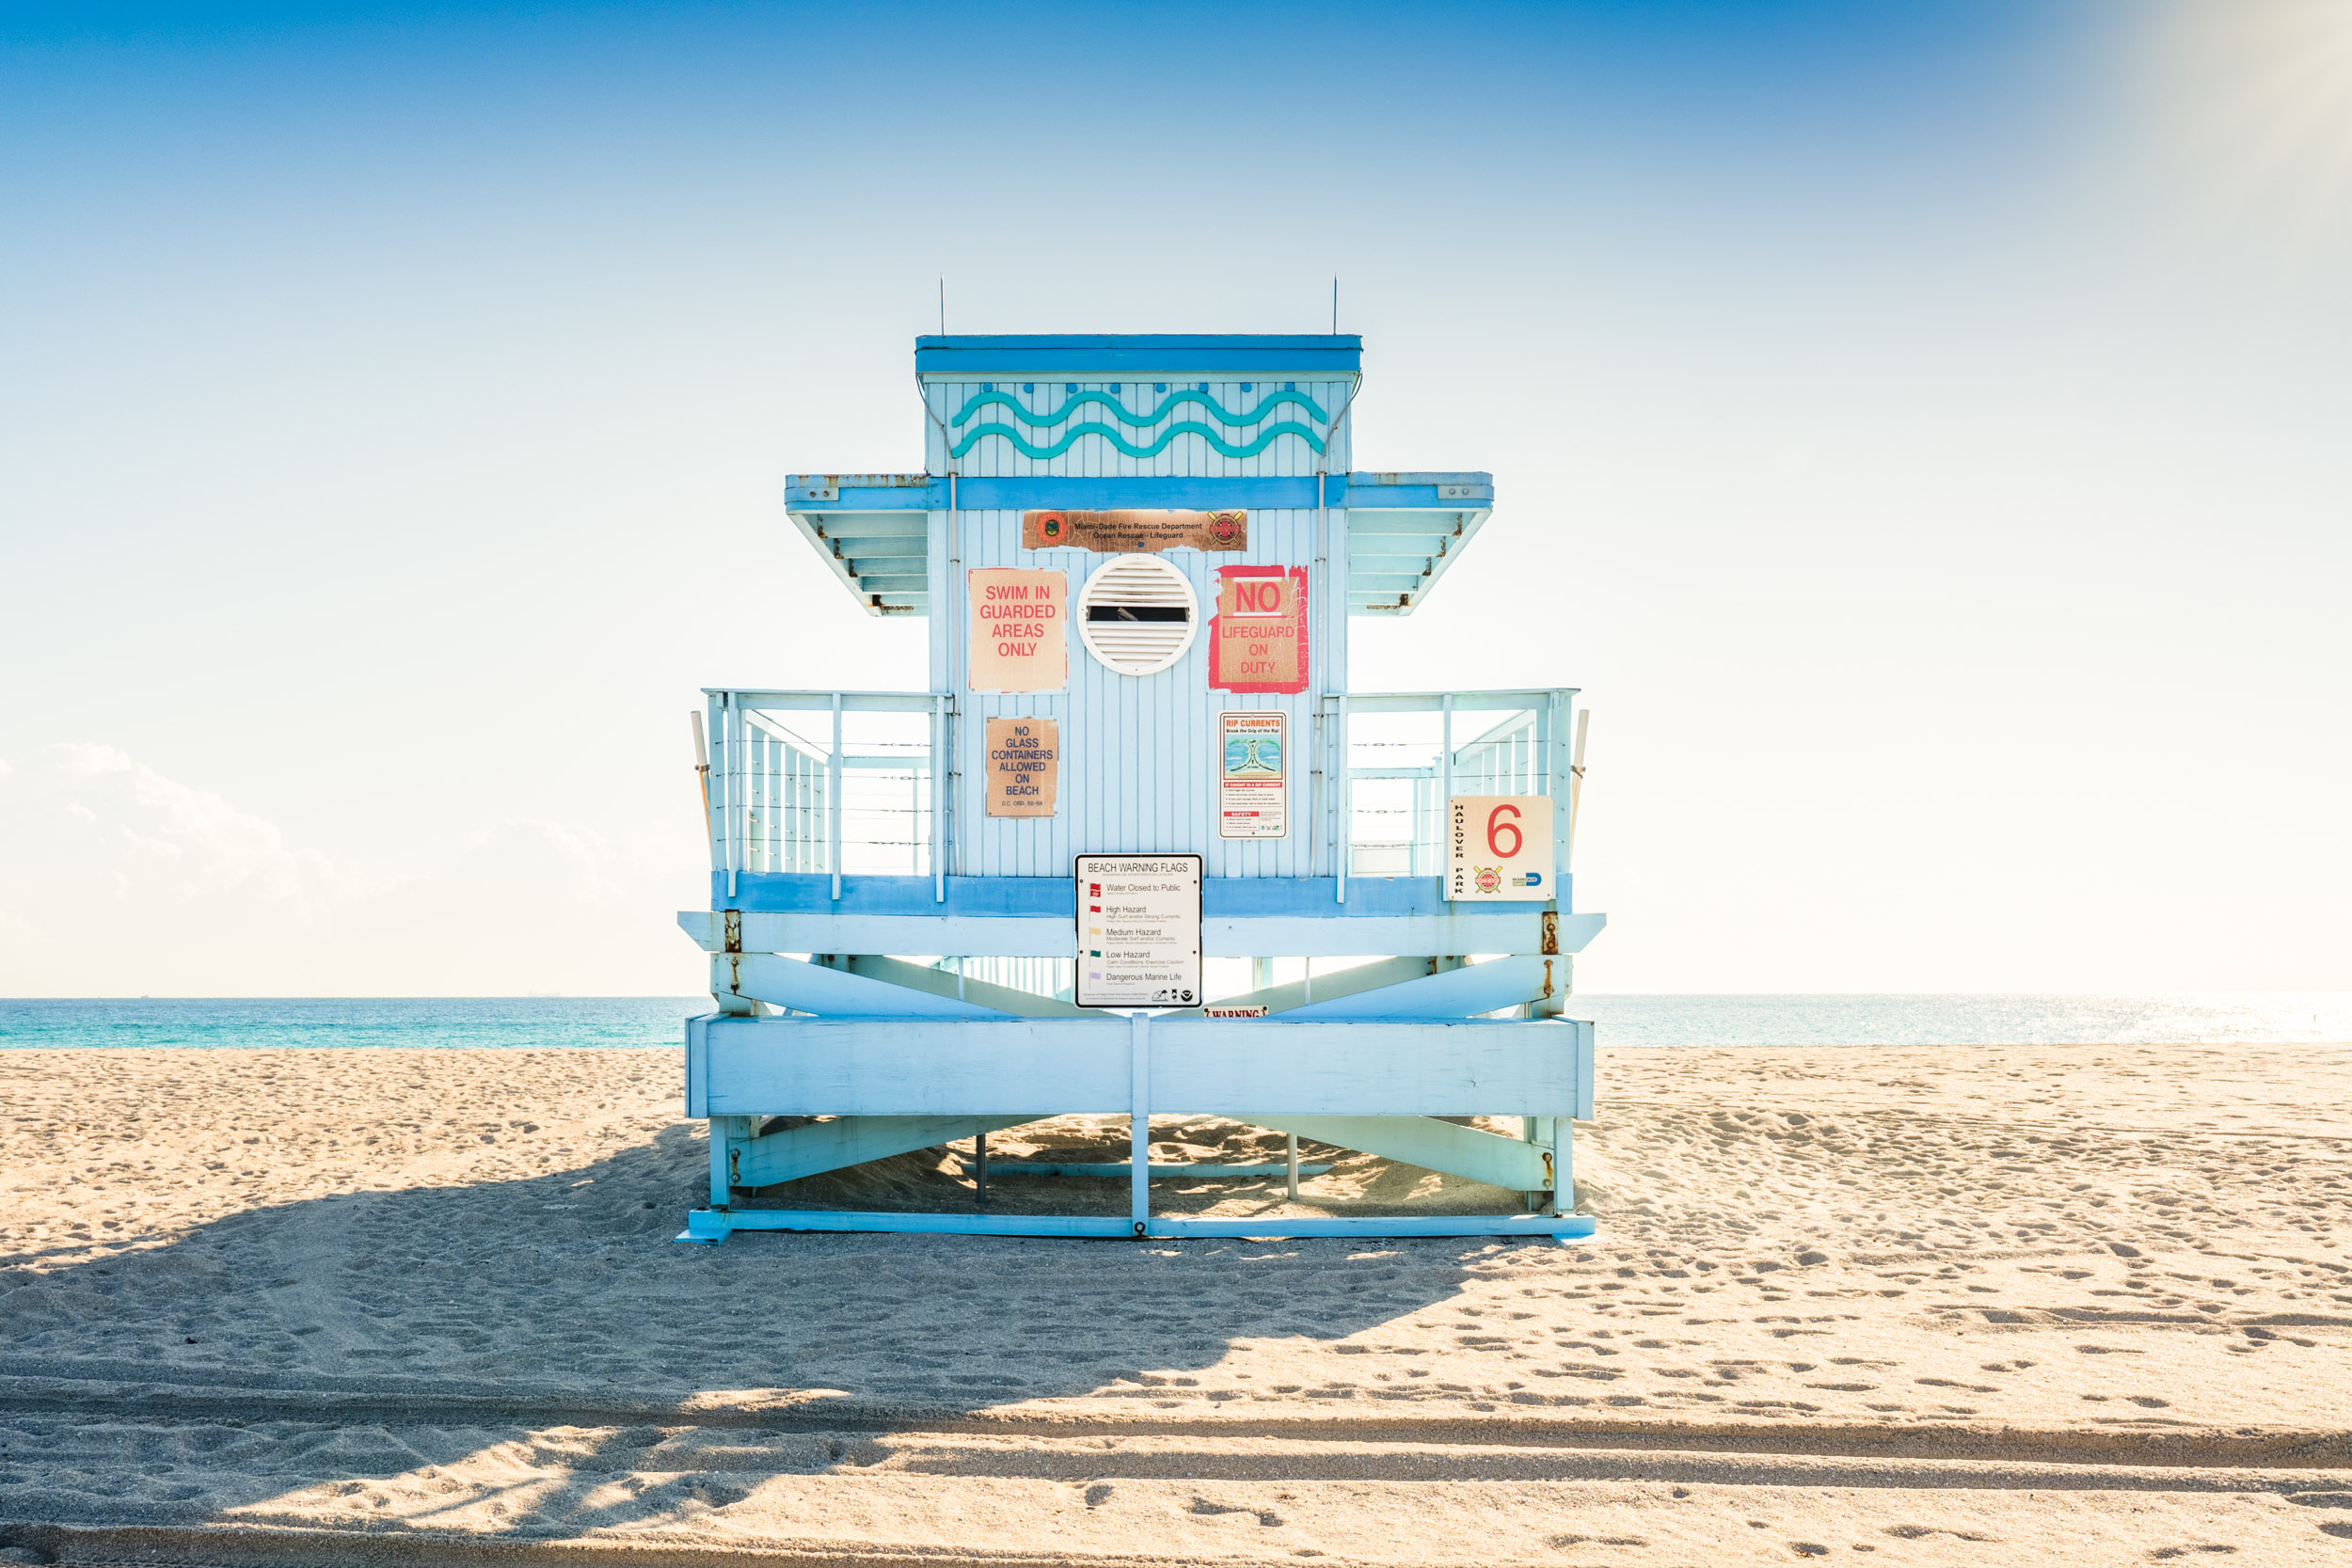 Haulover Beach Lifeguard Stand 6 (Series 1 of 4)